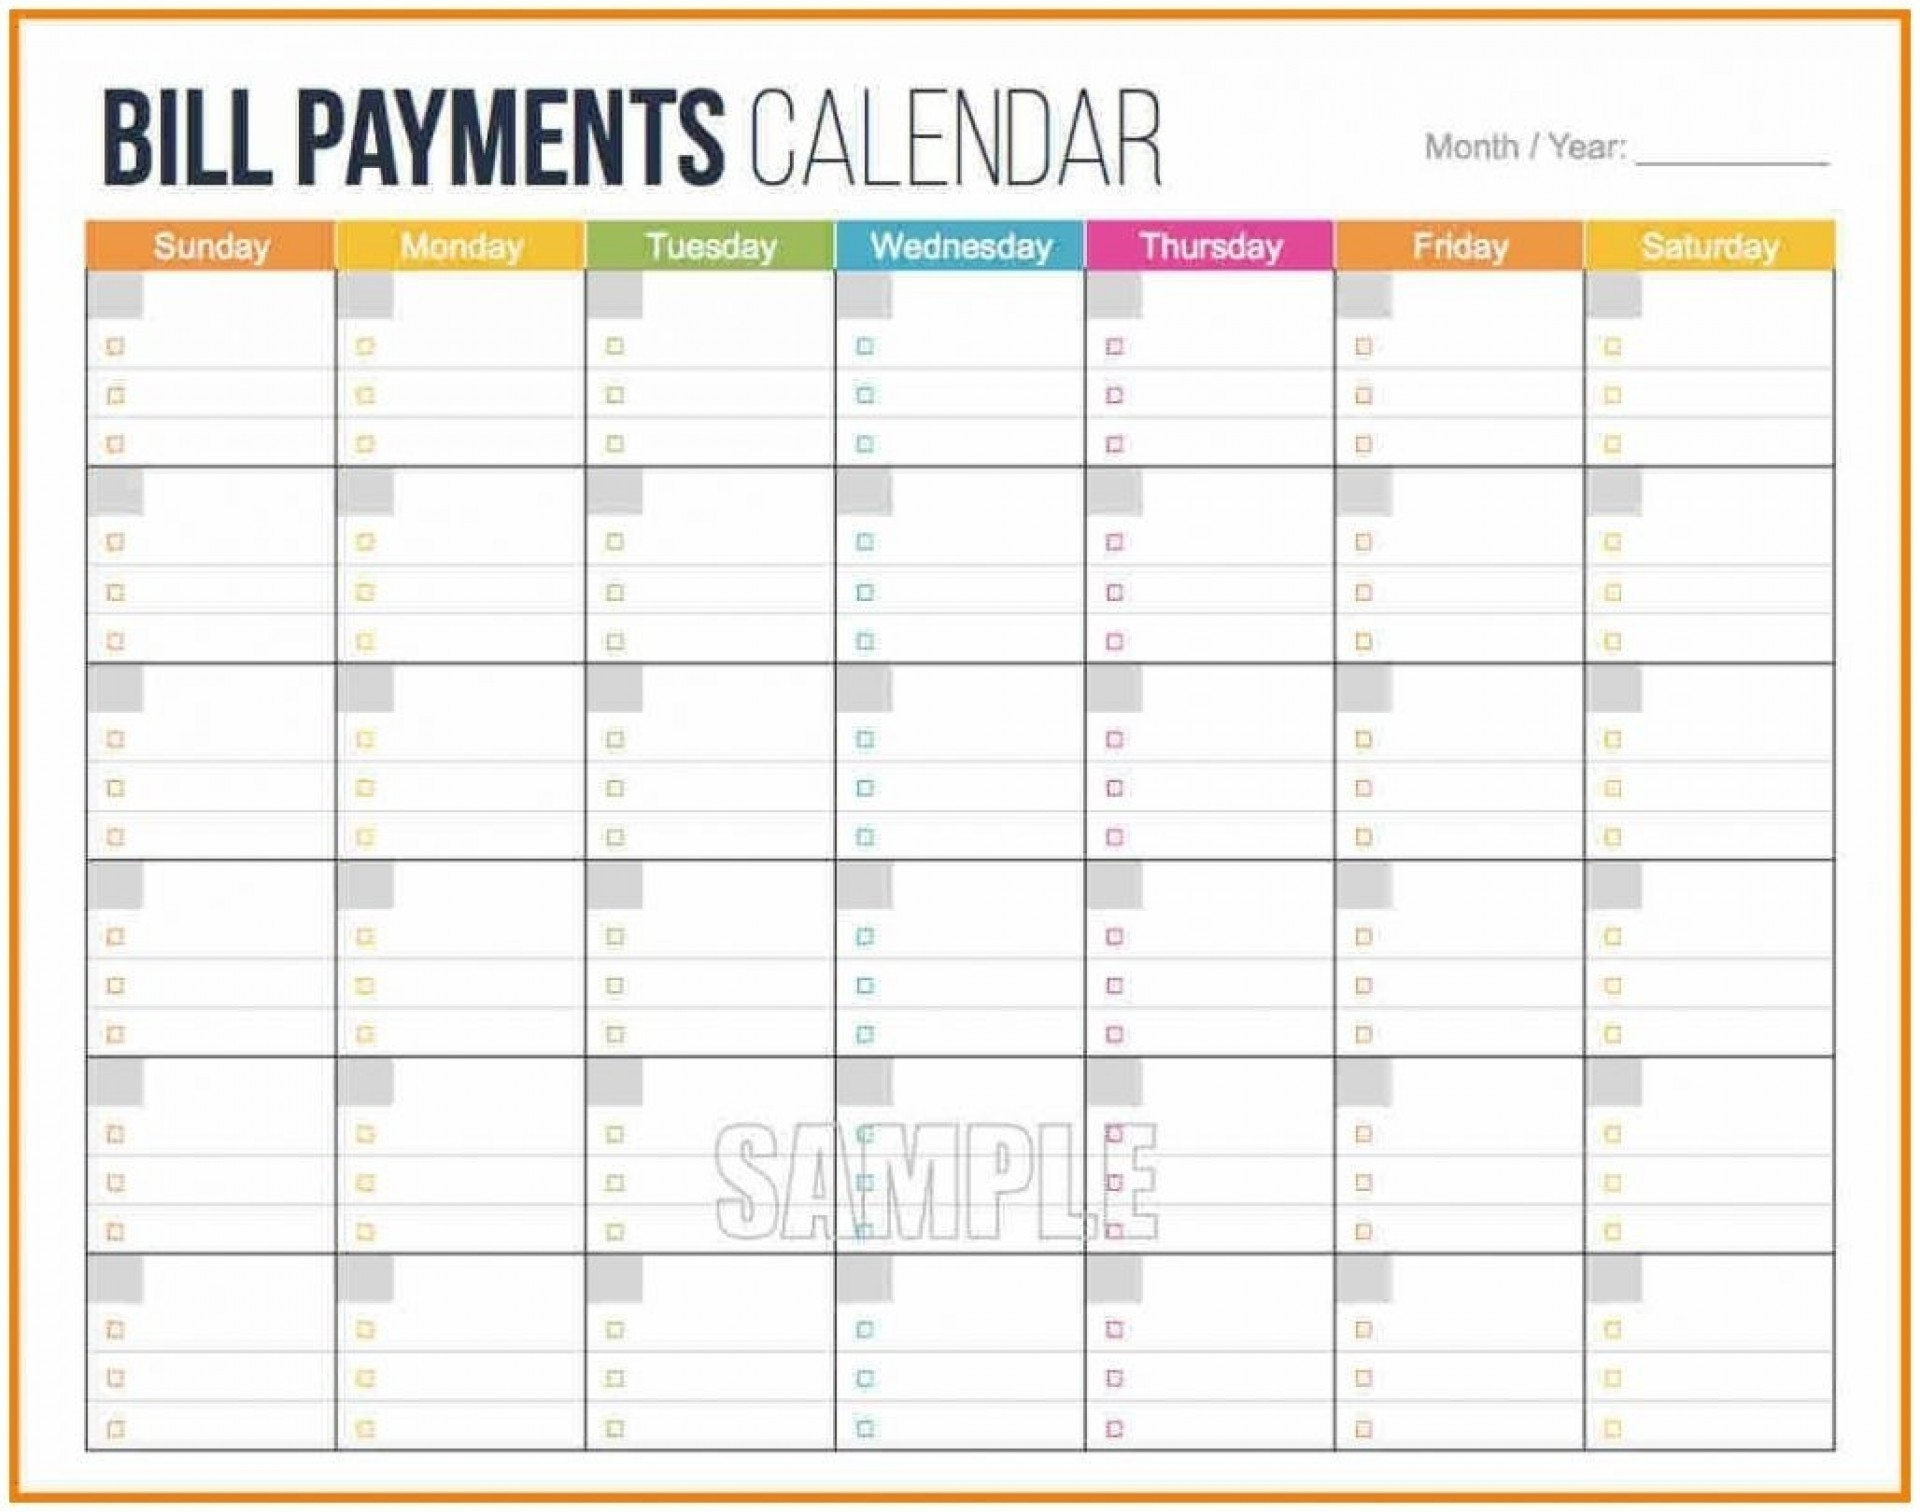 009 Bill Pay Calendar Template Ideas Paying Free Printable-Bill Payment Monthly Calendar Free